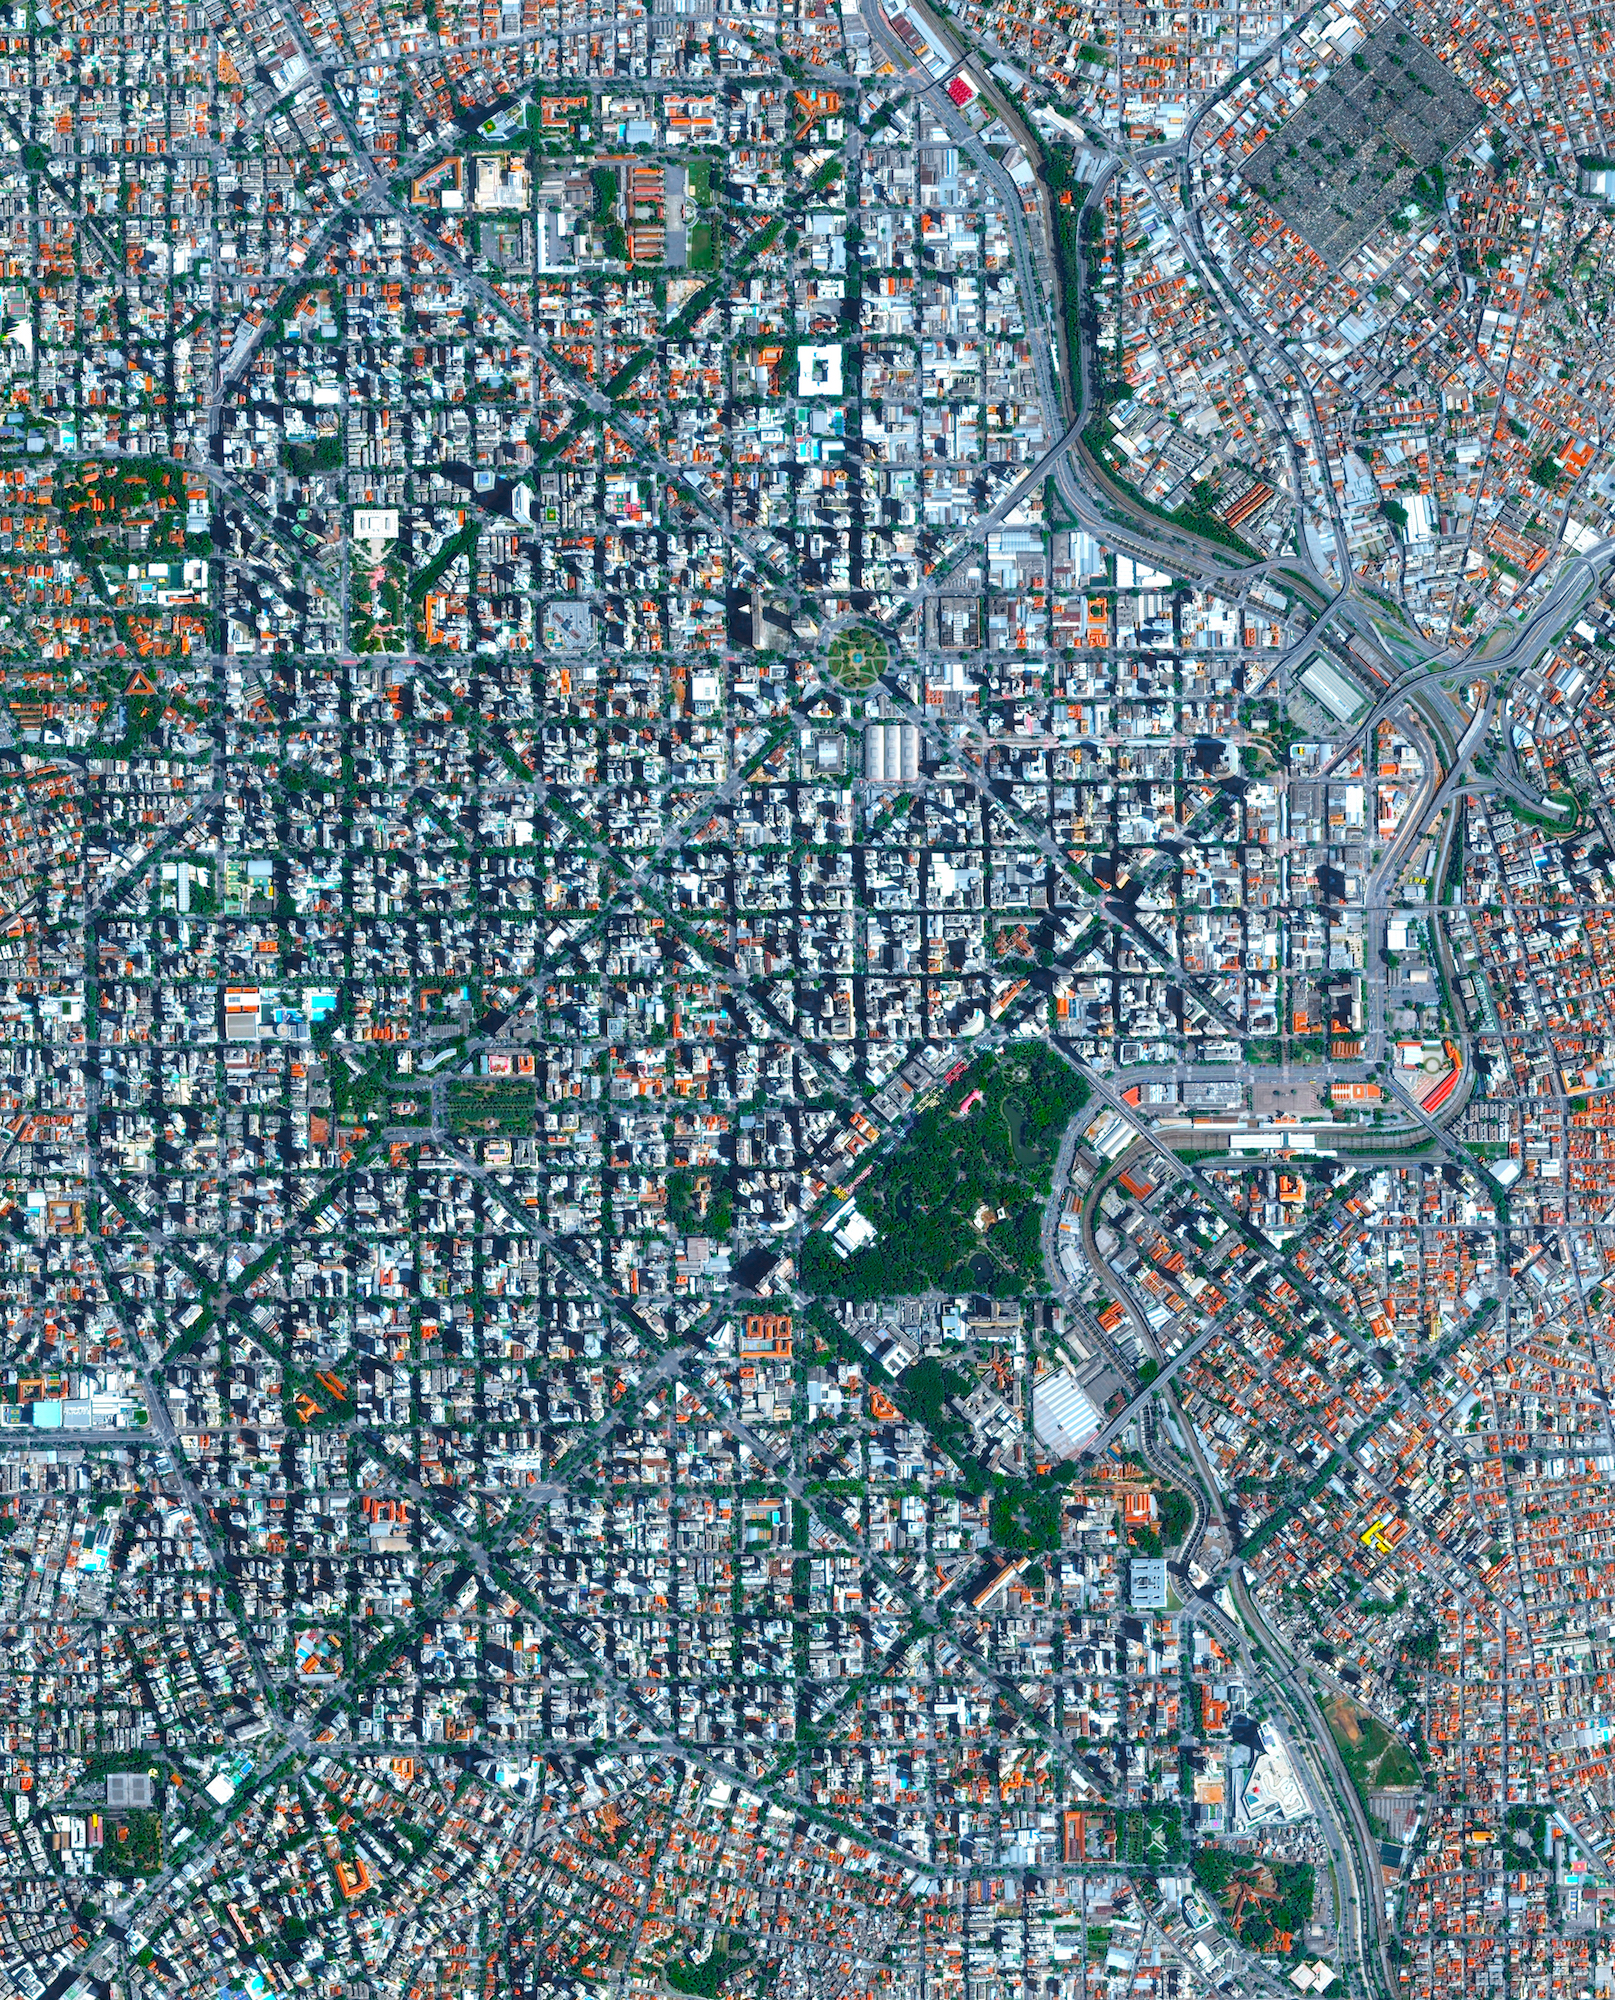 Belo Horizonte is the sixth largest city in Brazil with a population of roughly five million people. The city was constructed at the end of the 19th century with a planned, symmetrical array of perpendicular and diagonal streets in its downtown area. The roads are named after the Brazilian states and the indigenous tribes of Brazil.  19°55′S 43°56′W